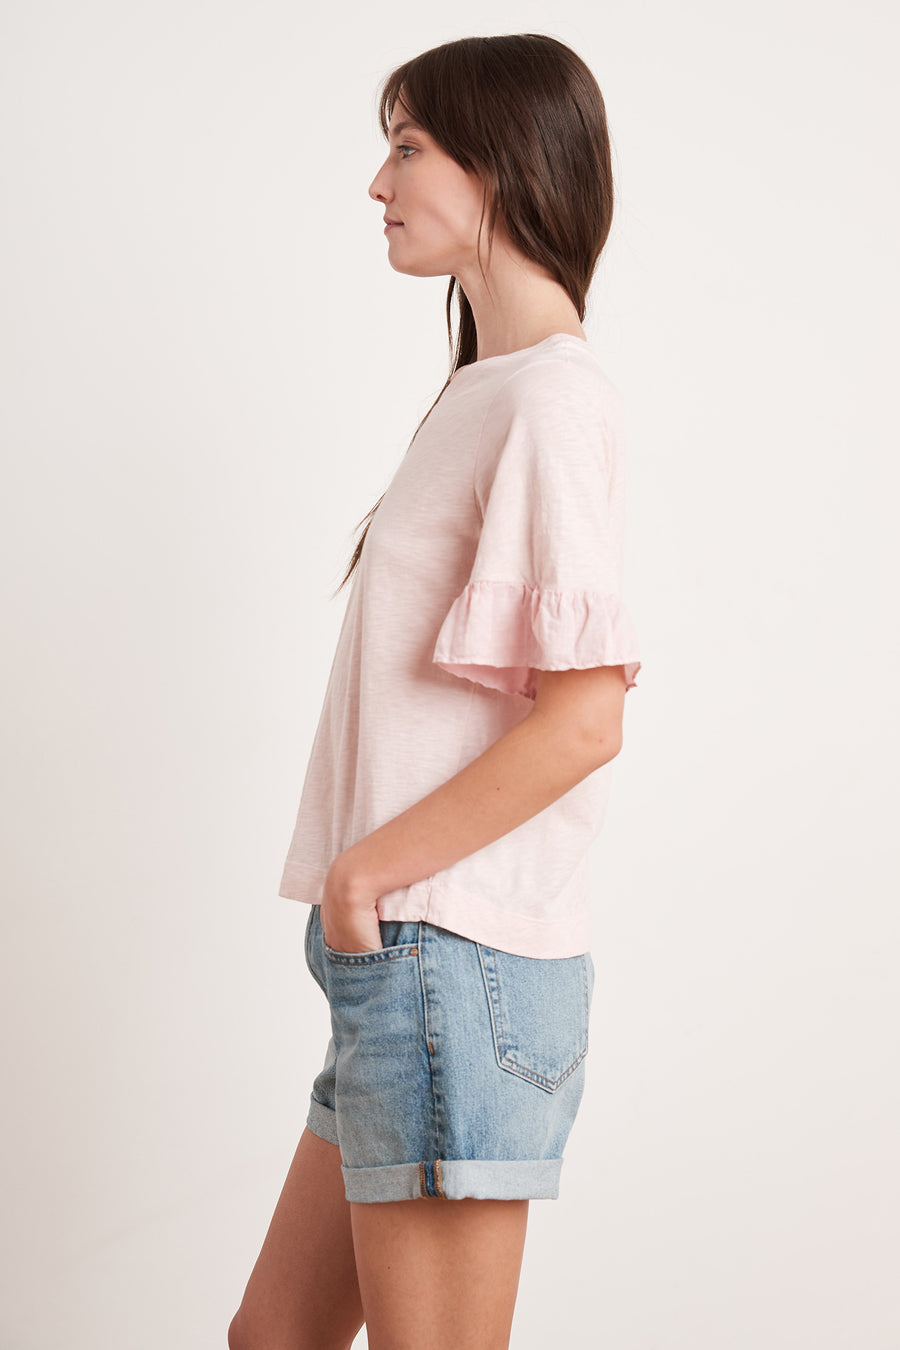 TRUDY - TOP WITH RUFFLE SLEEVE